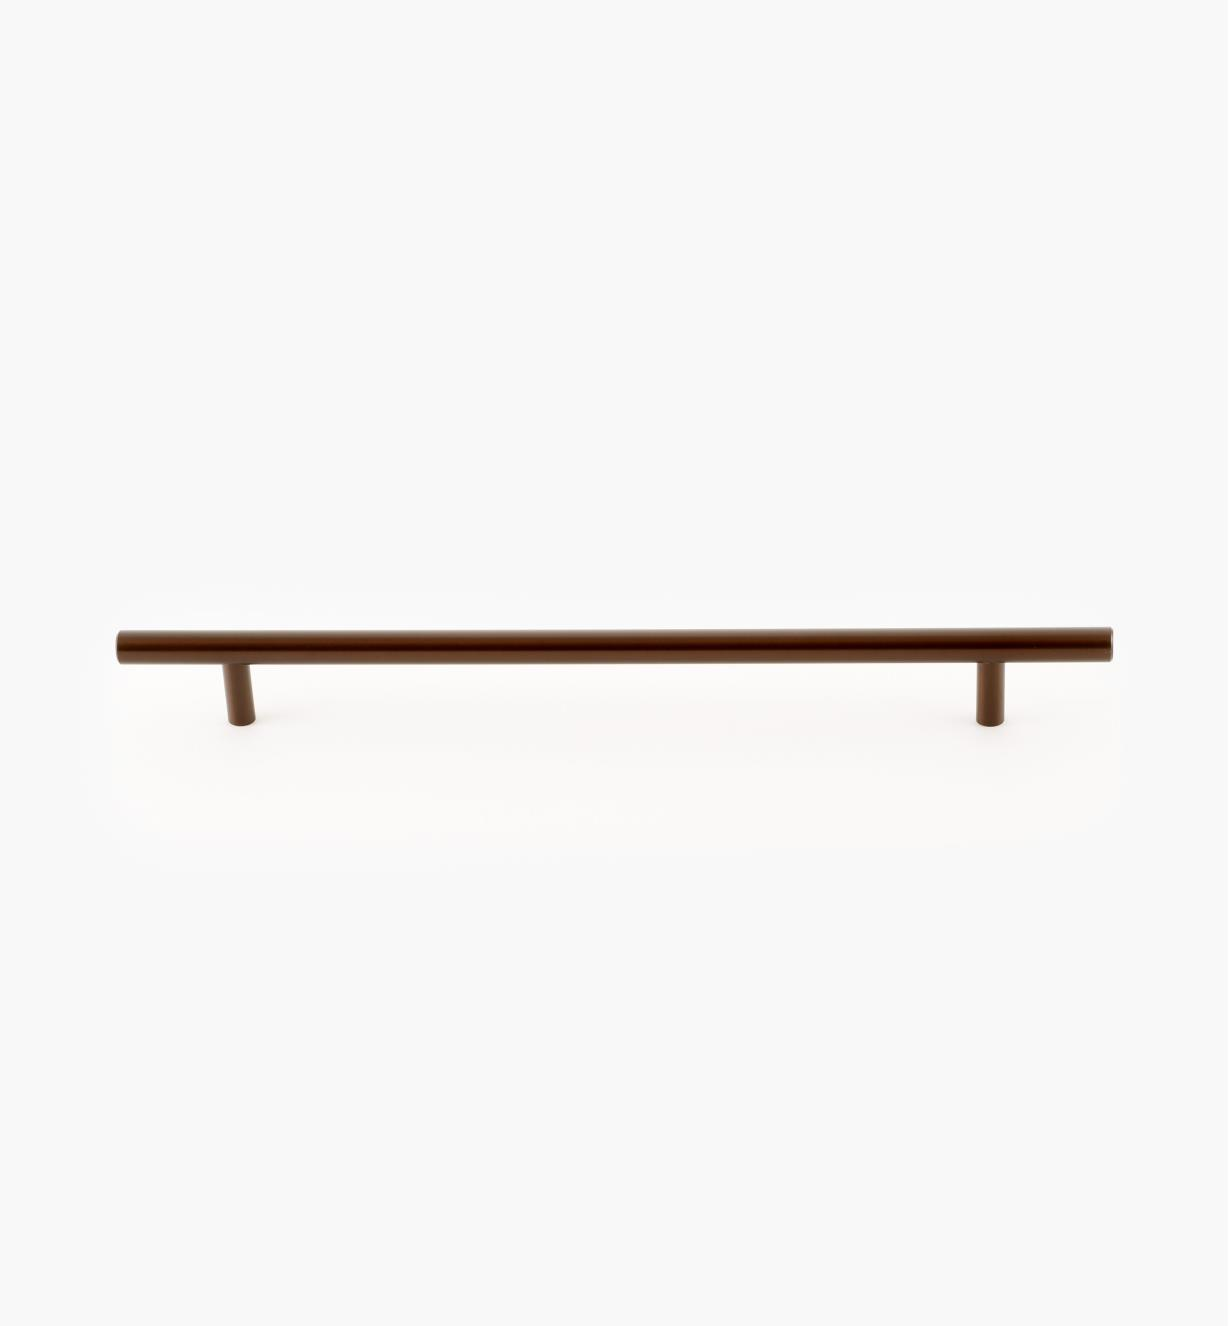 02A1479 - Bar Caramel Bronze 256mm (337mm) Pull, each